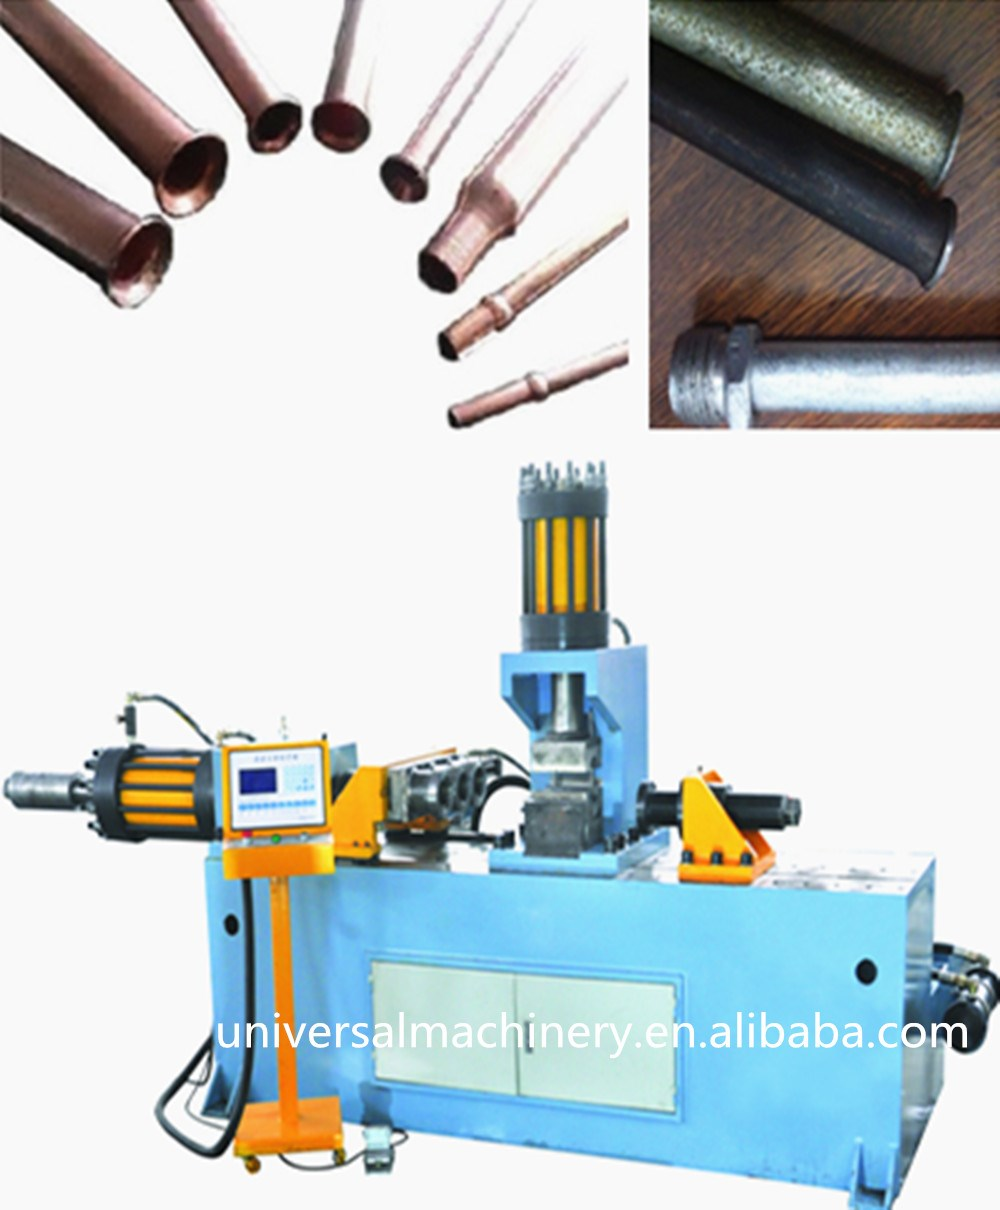 Global Warranty China Factory price pipe end shrinking machine